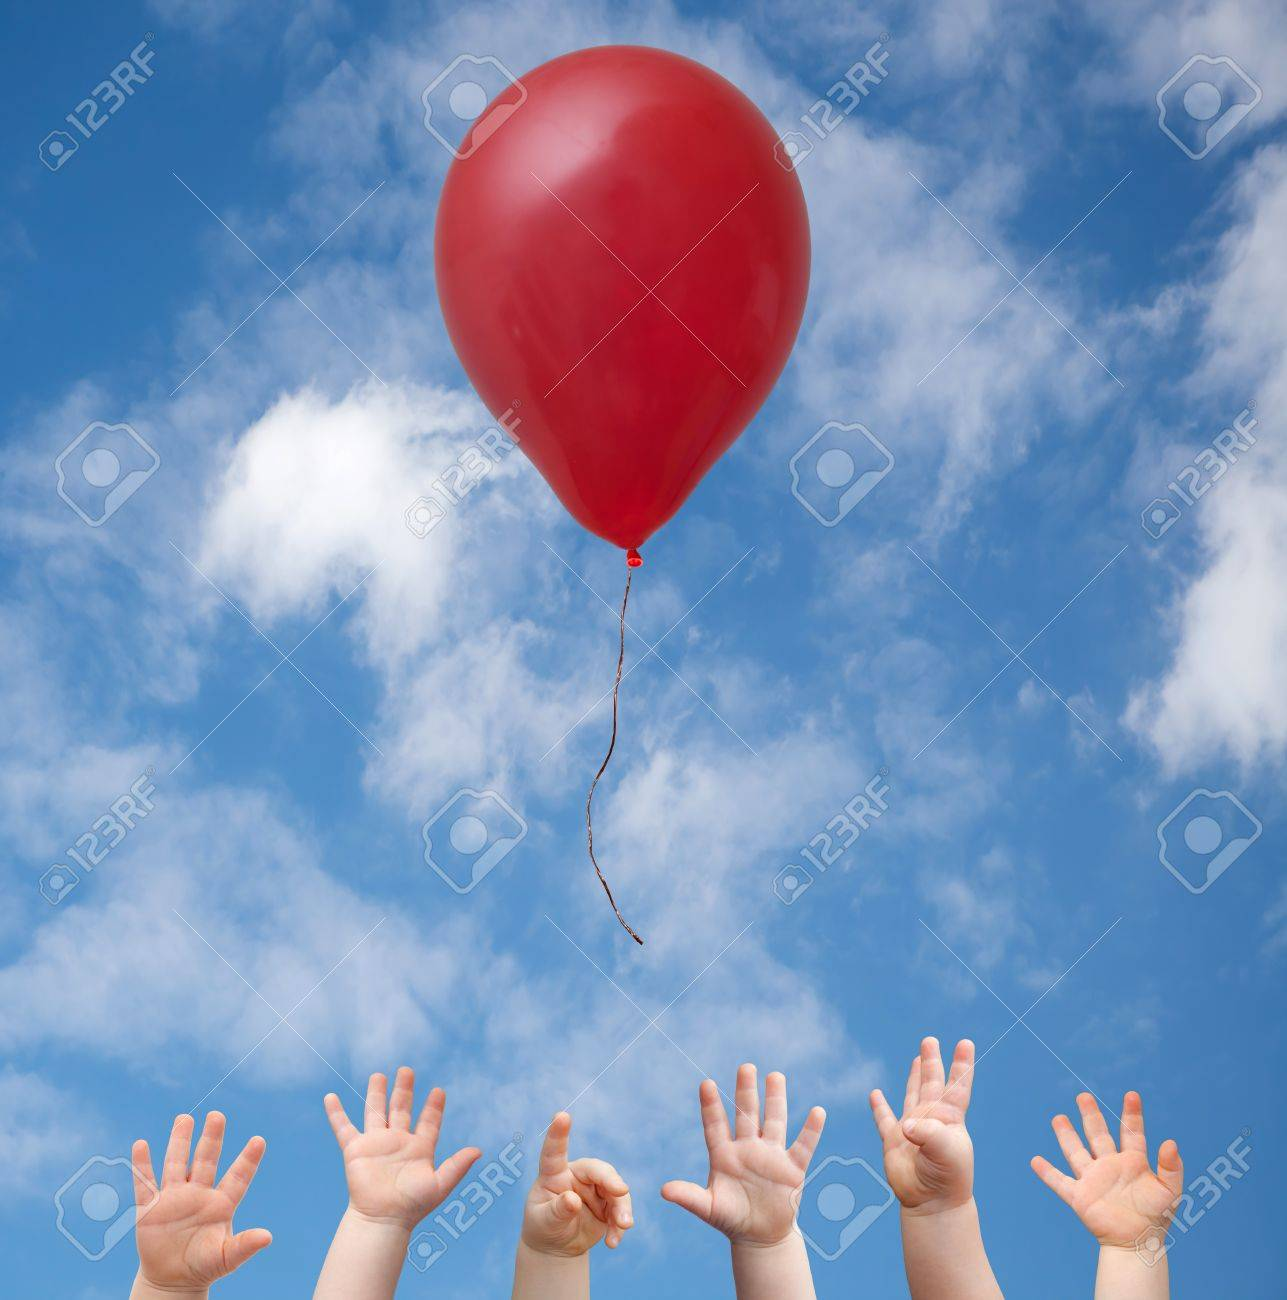 Hands of young children reaching for red balloon Stock Photo - 20142950